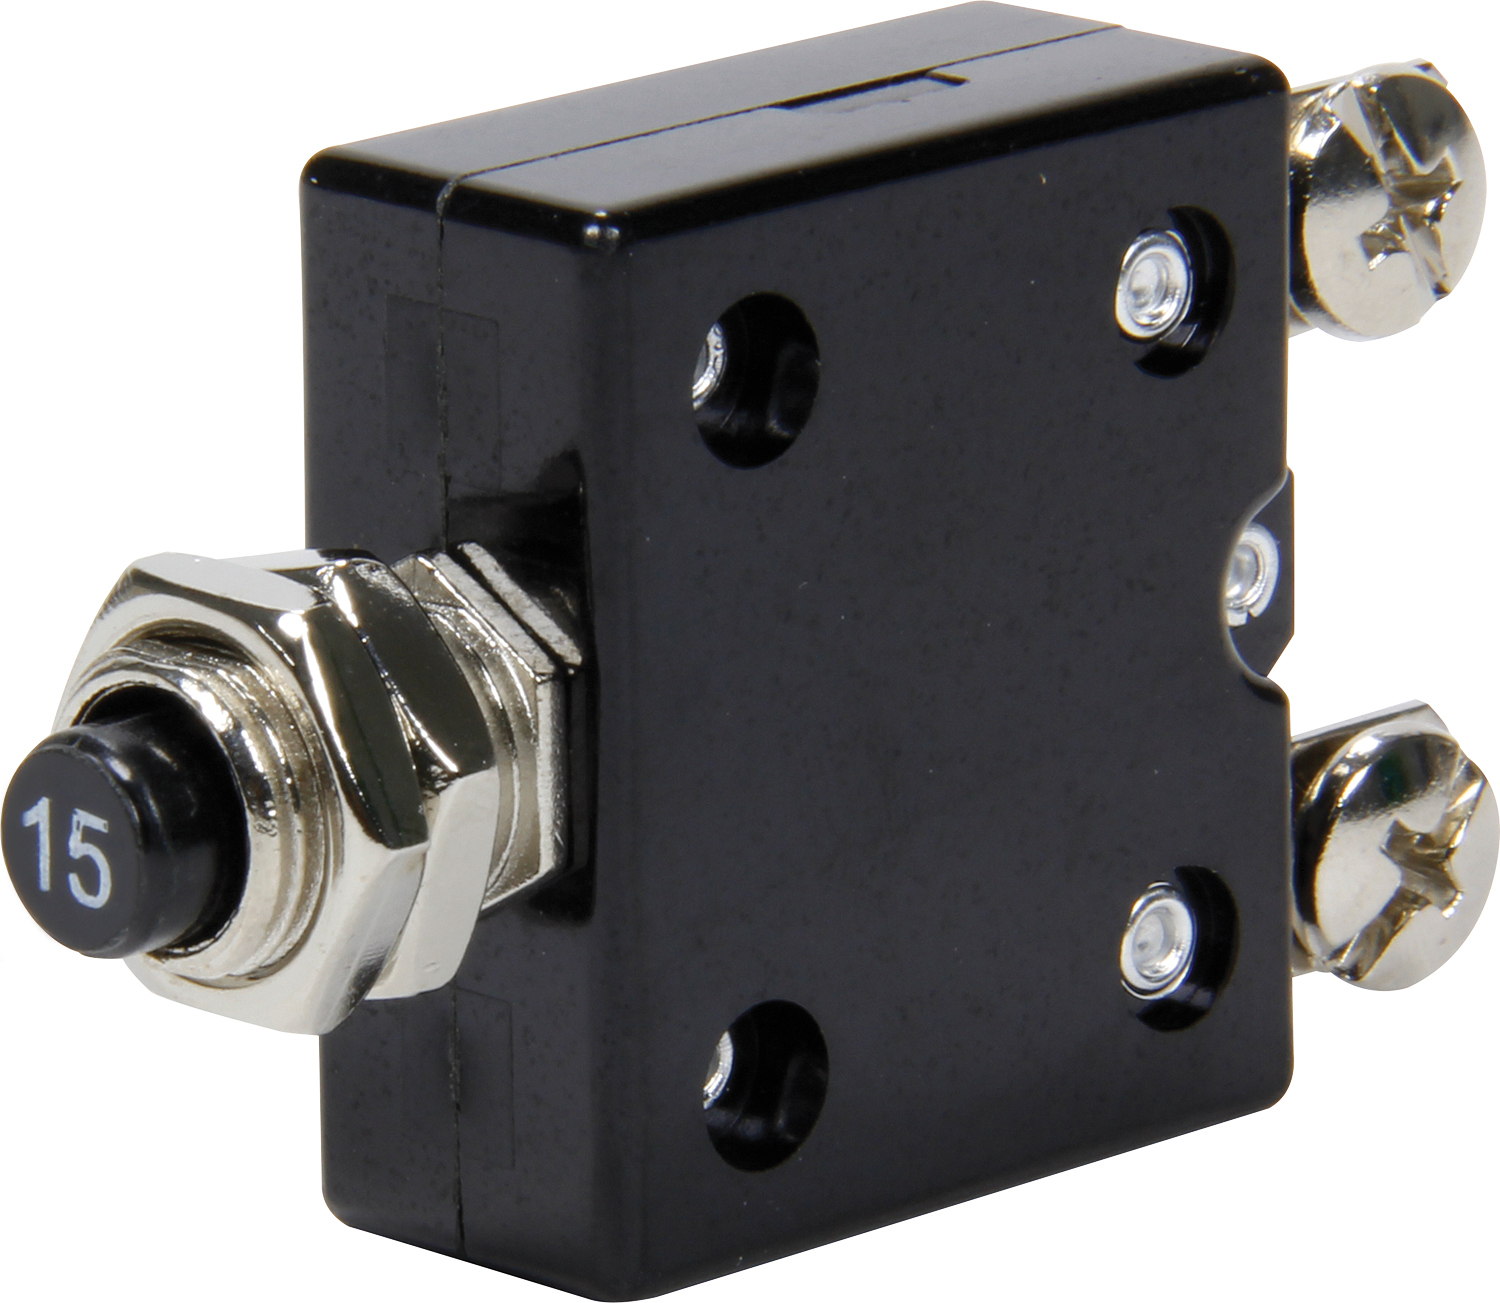 Quickcar Racing Products 15 Amp Resettable Circuit Breaker